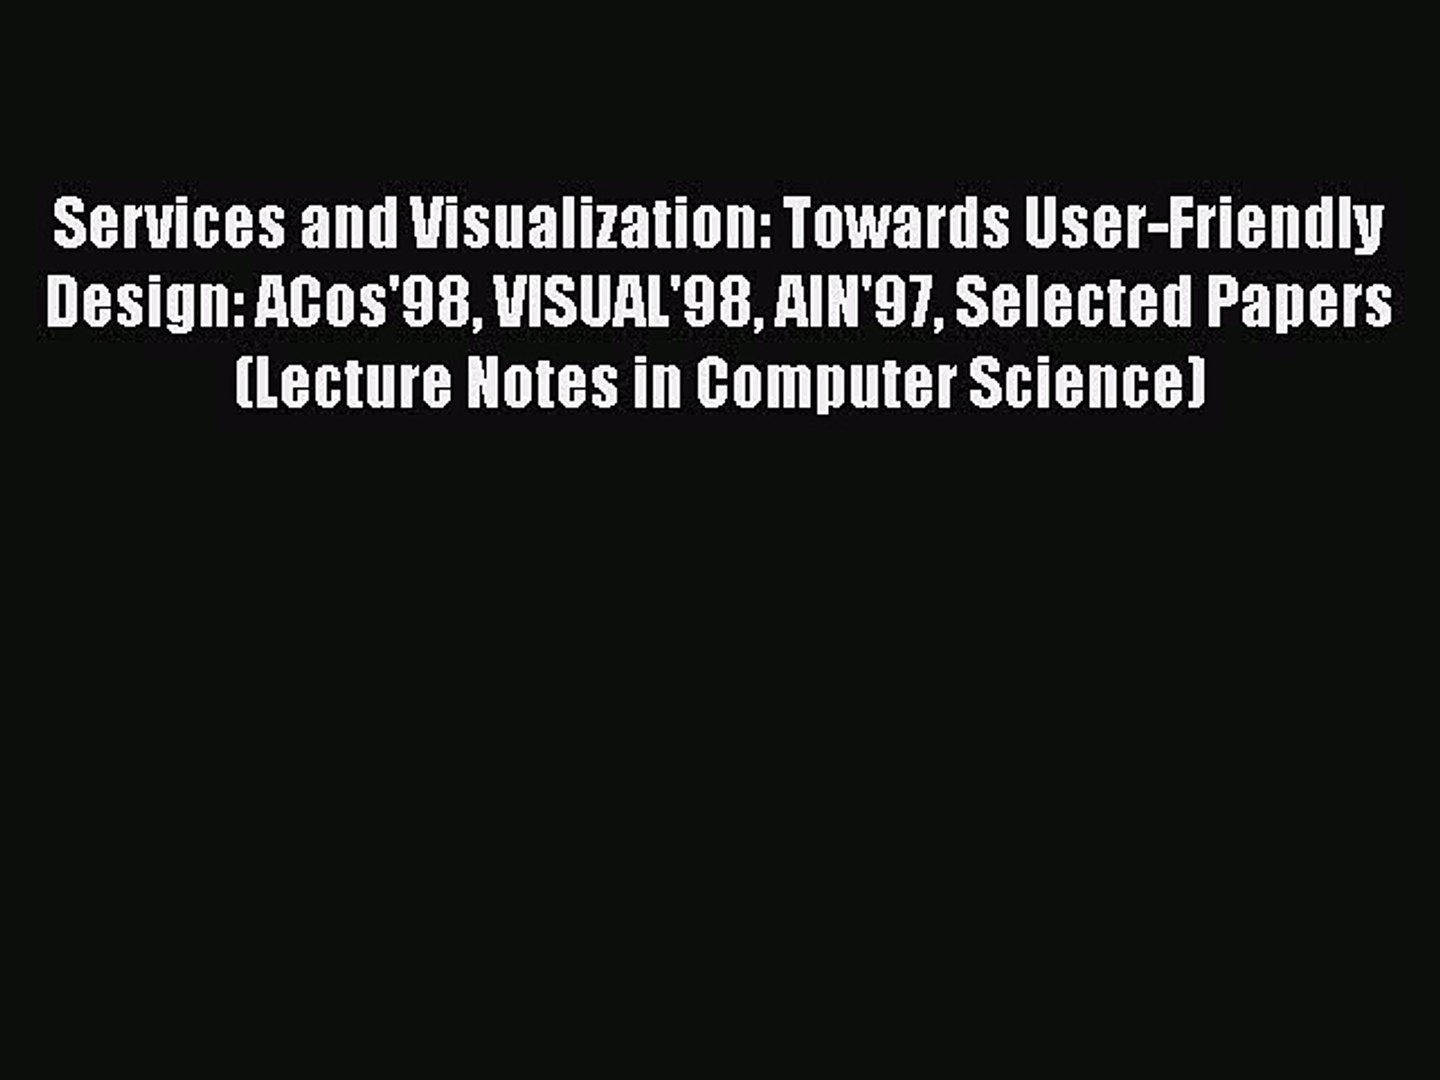 [PDF] Services and Visualization: Towards User-Friendly Design: ACos'98 VISUAL'98 AIN'